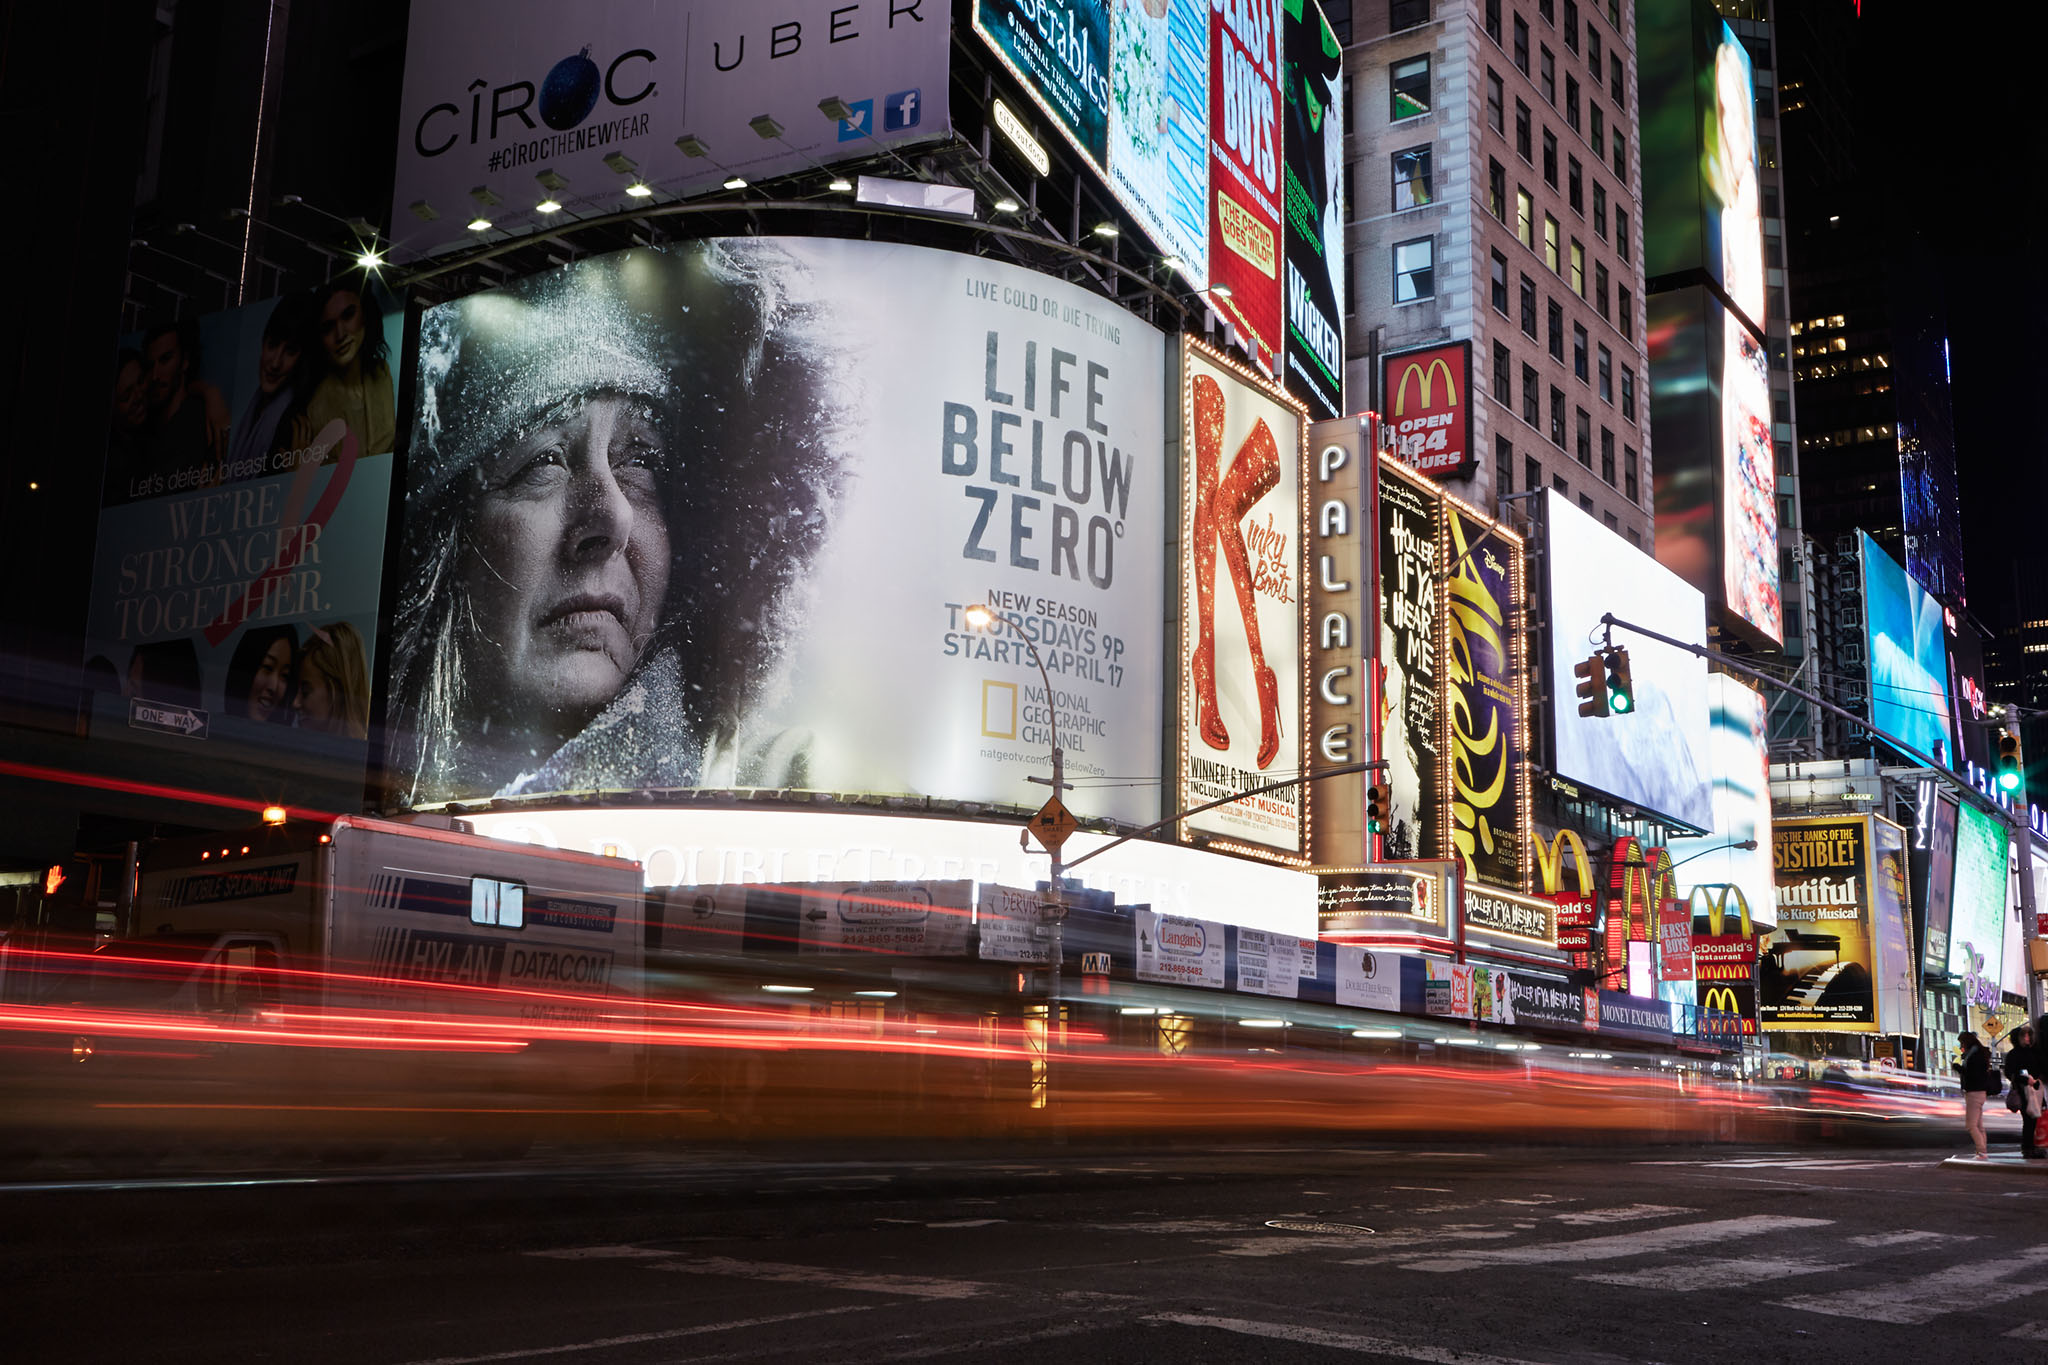 Life_Below_Zero_Sue_Aikens_Billboard_Times_Square_01